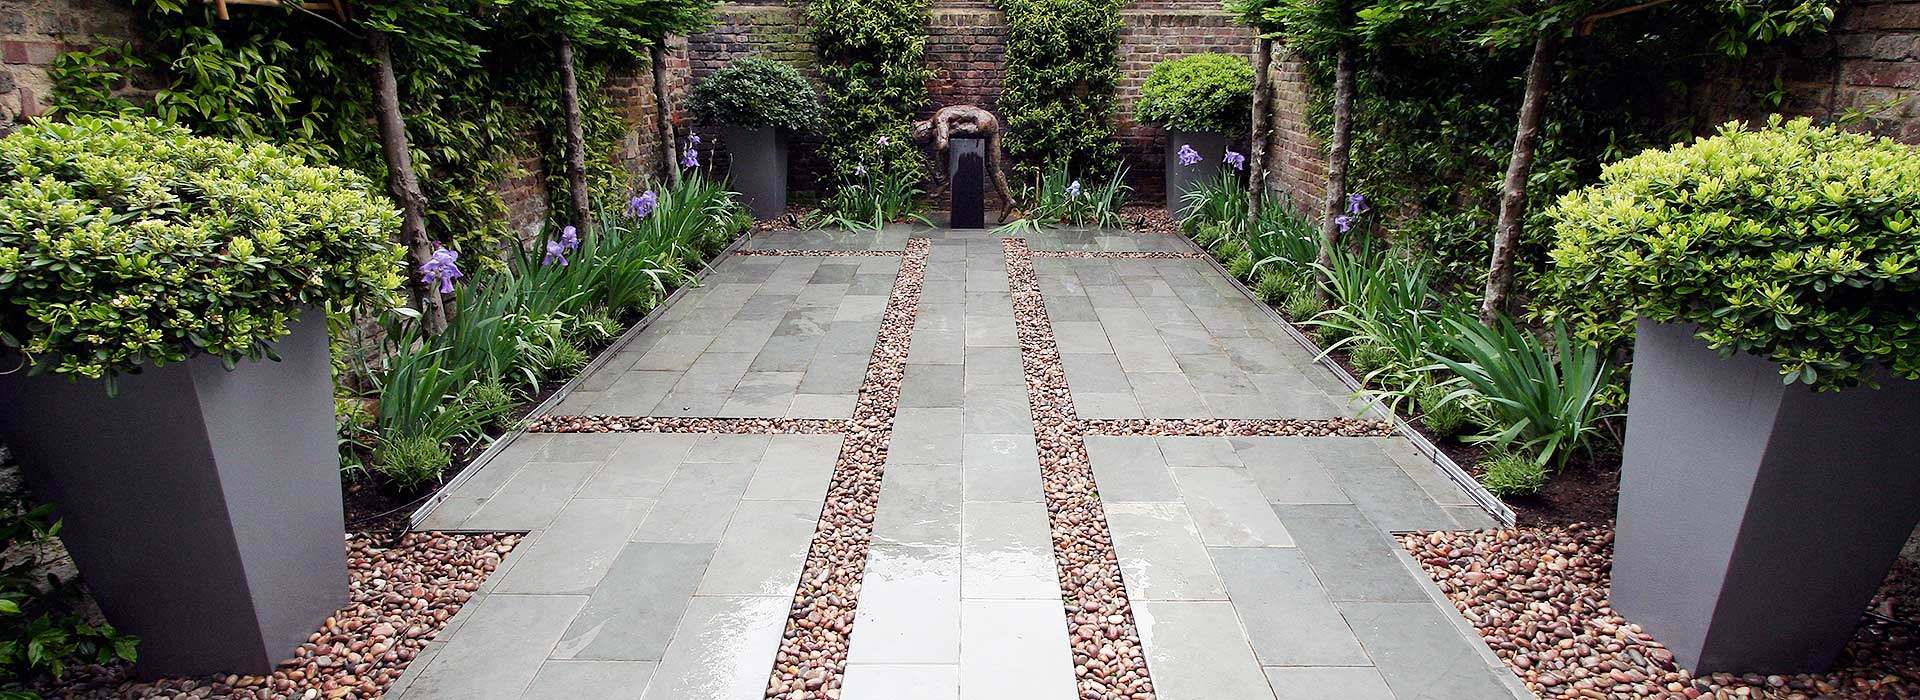 garden design in london 4